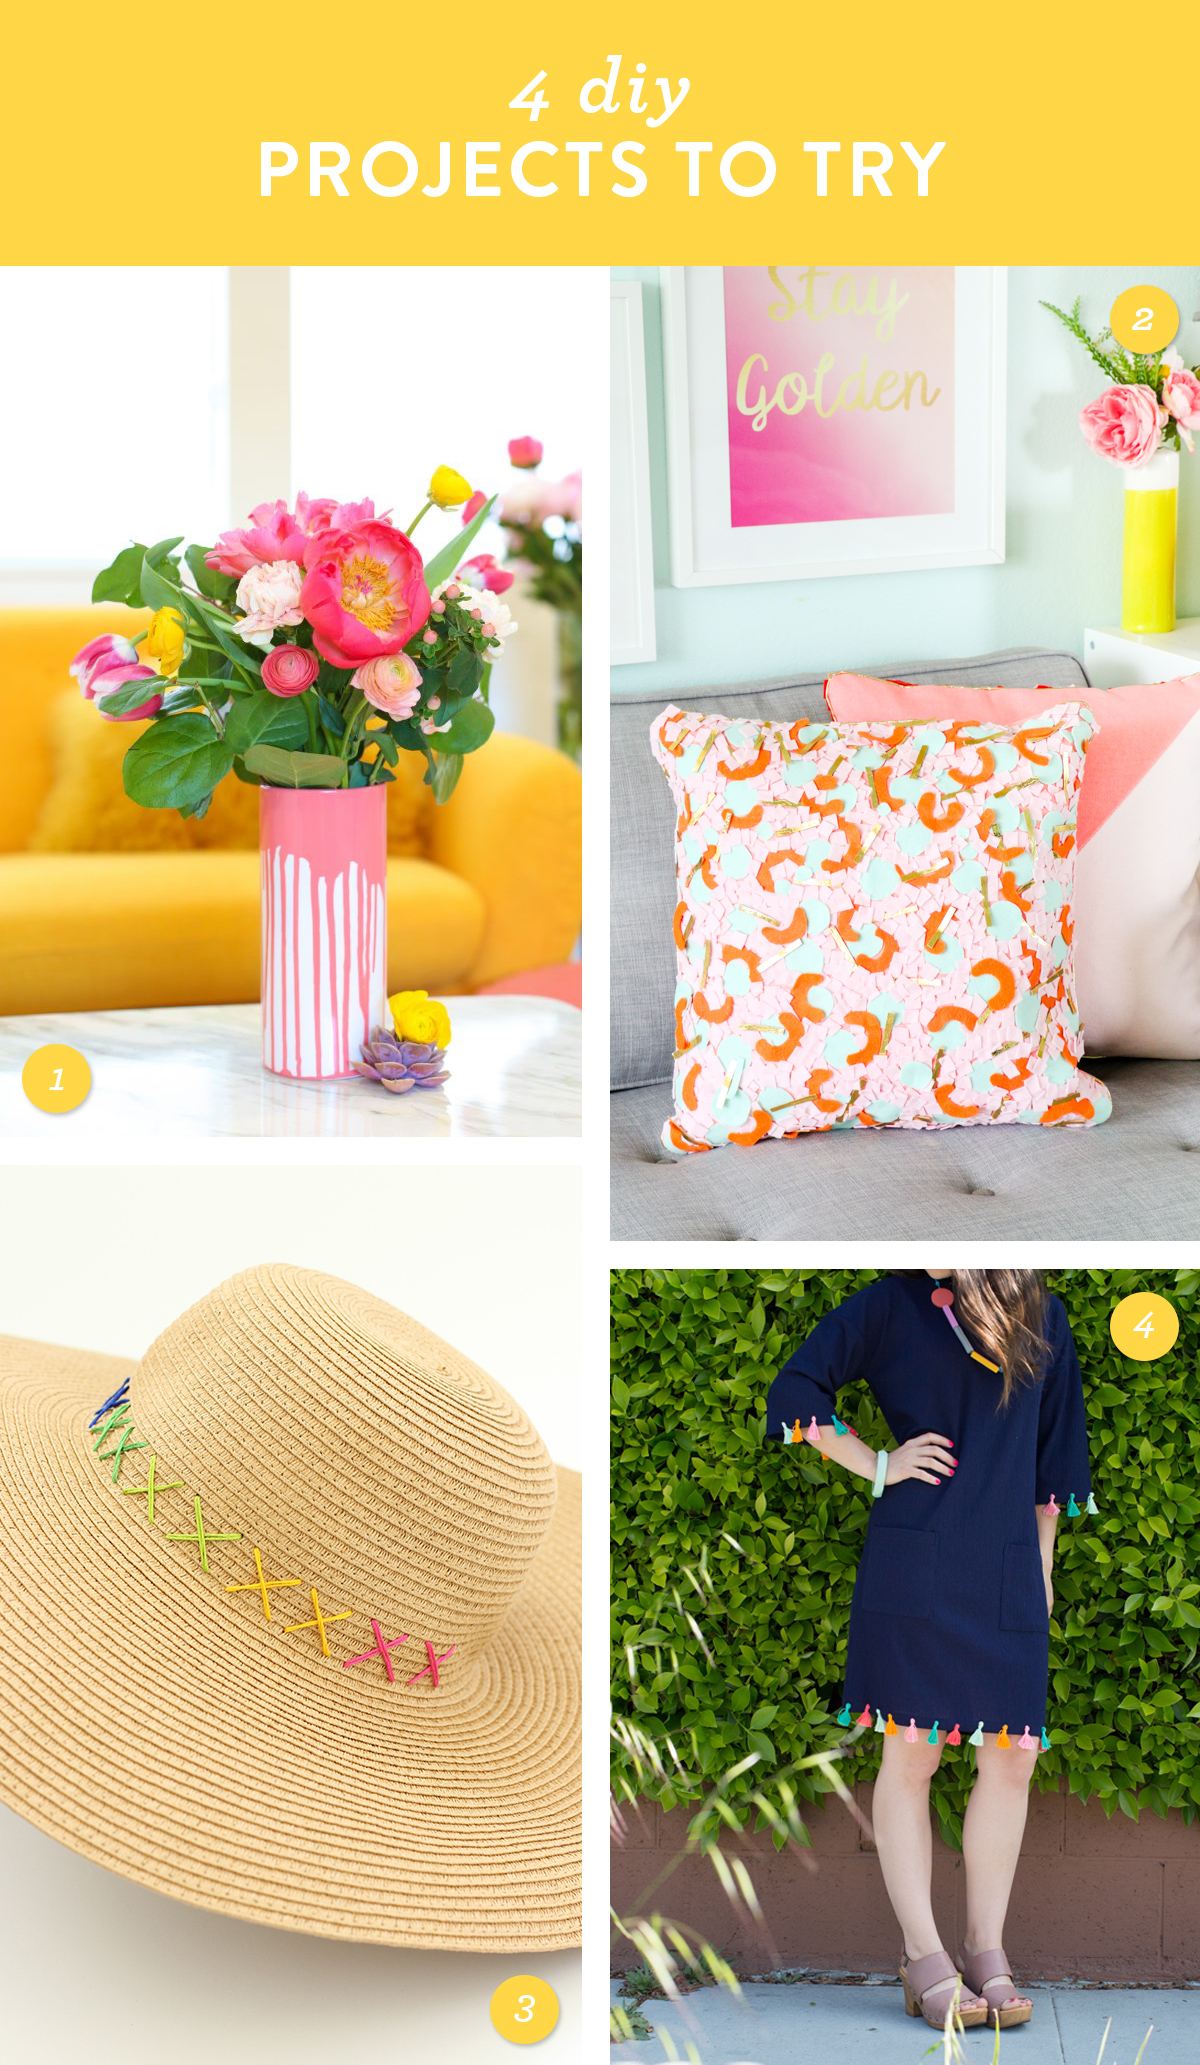 Try one of these colorful home decor or fashion DIY projects this weekend!